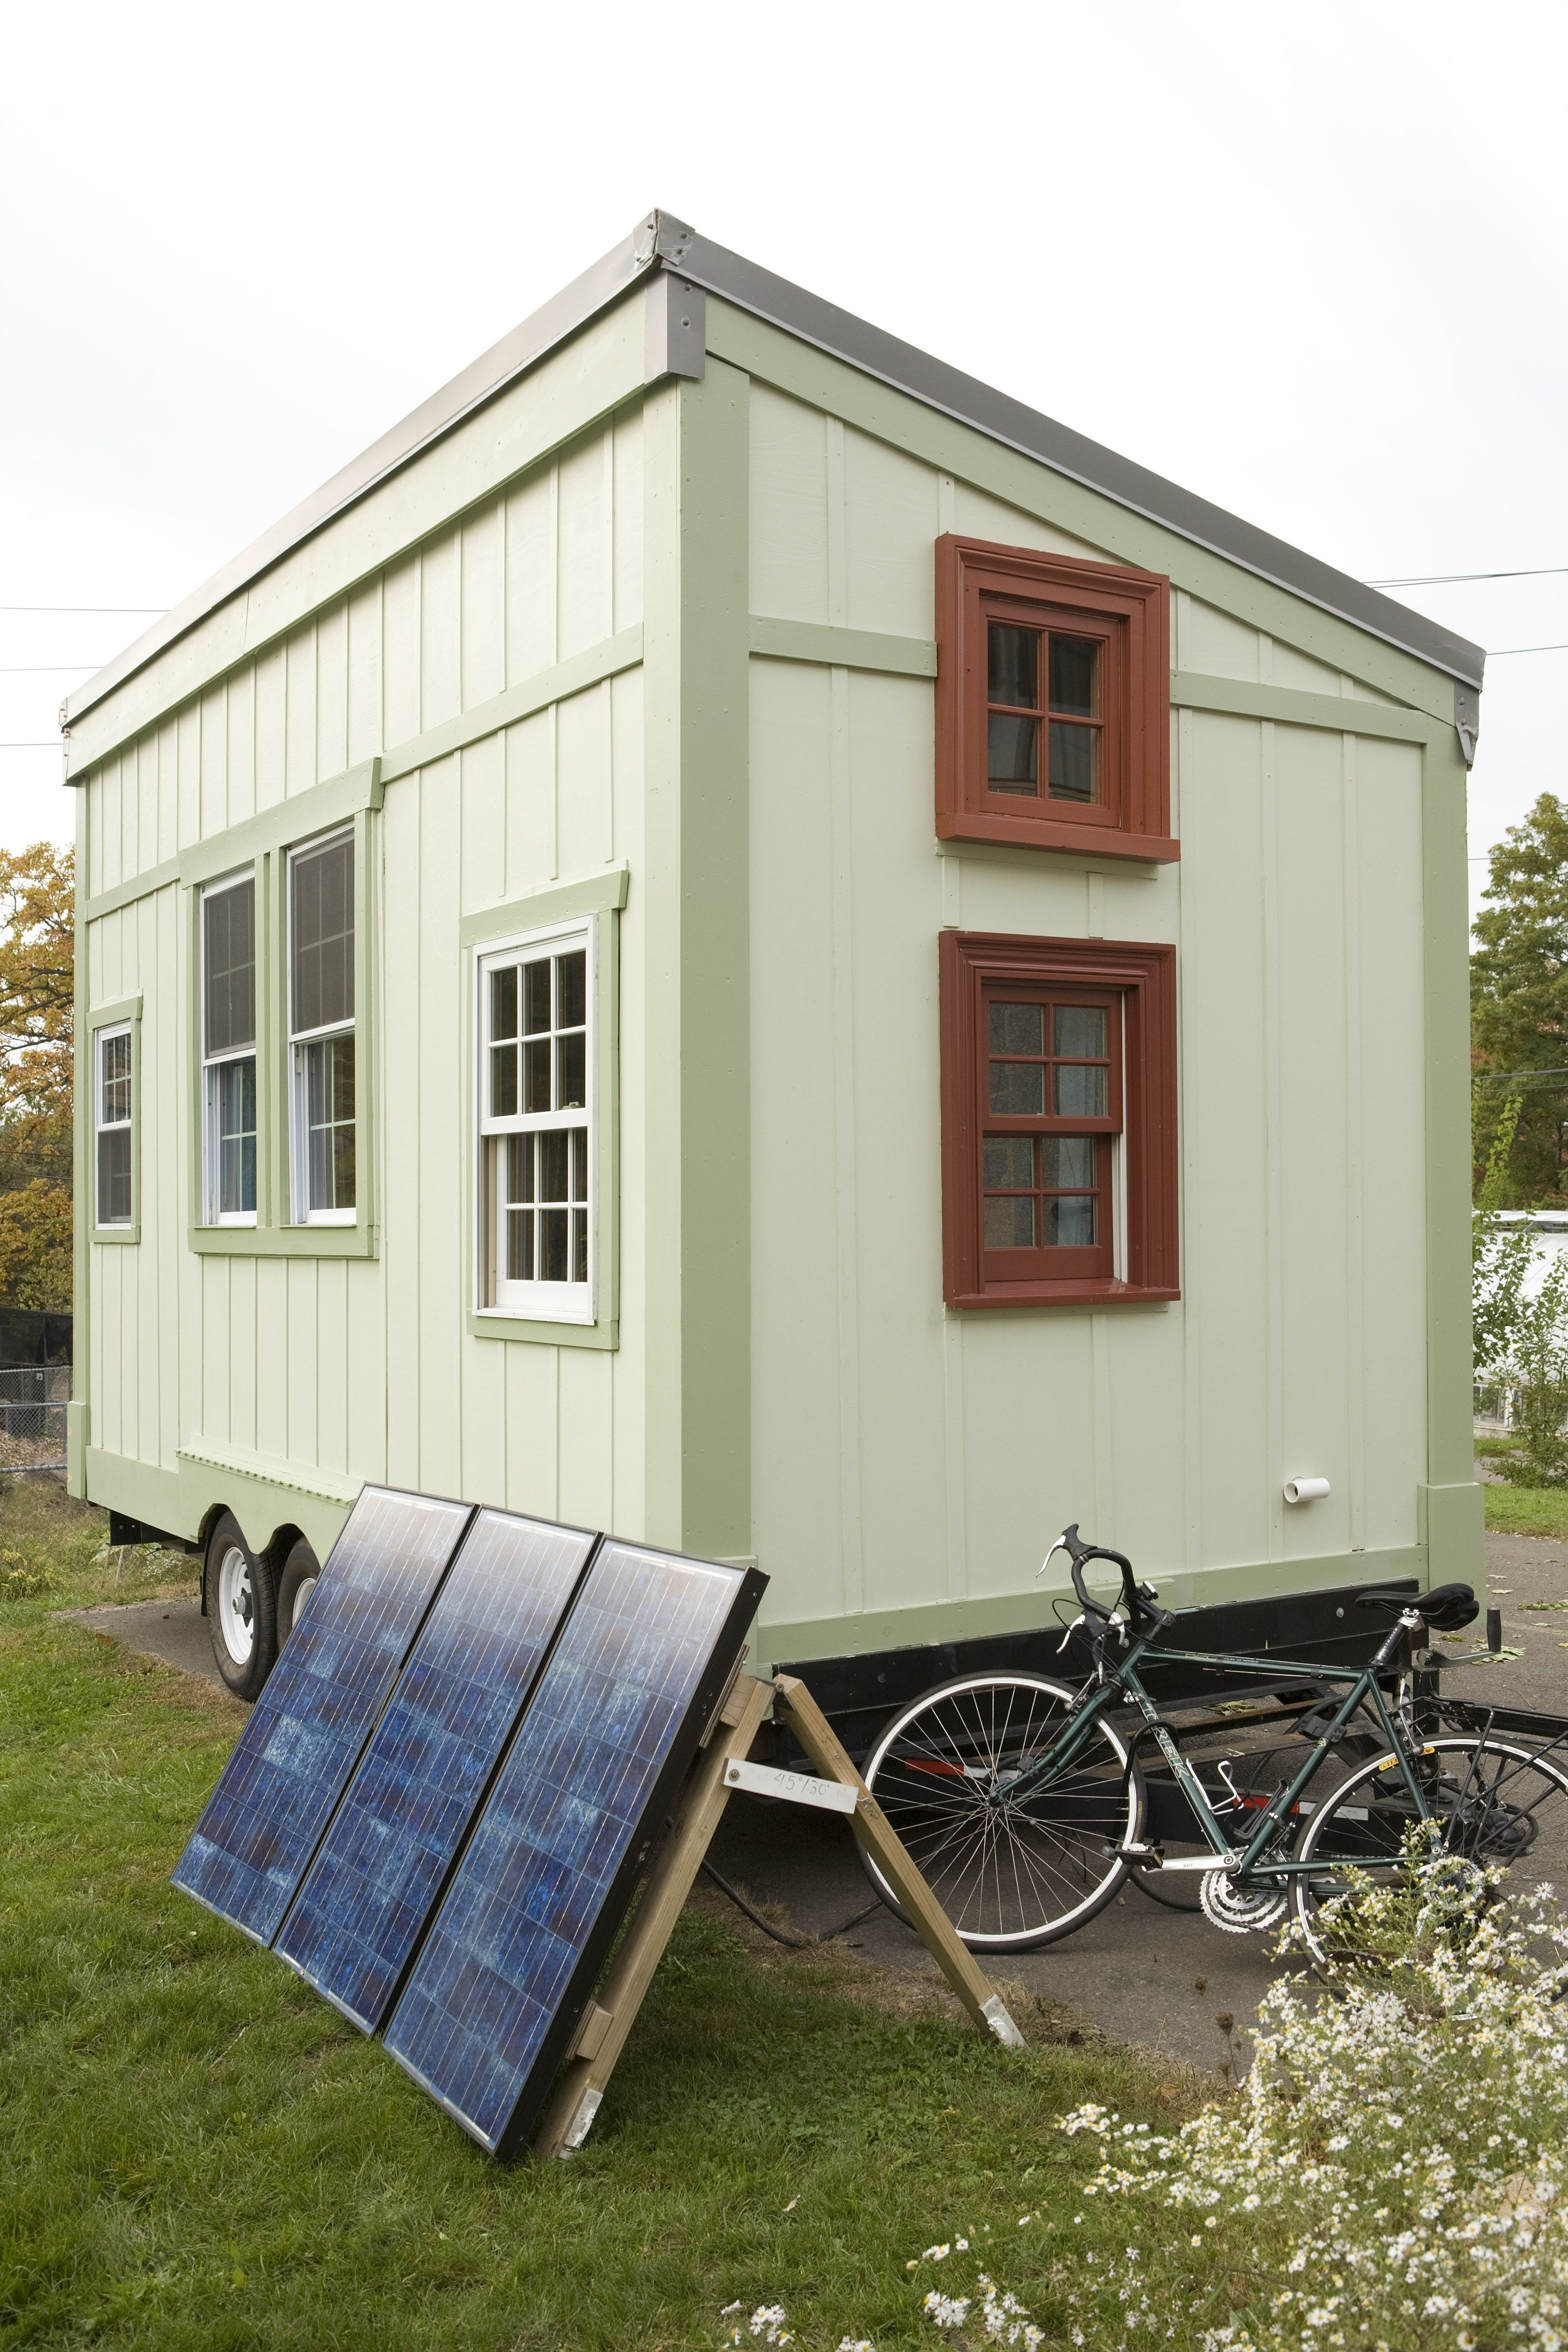 Tiny Home Designs: Self Built Tiny House